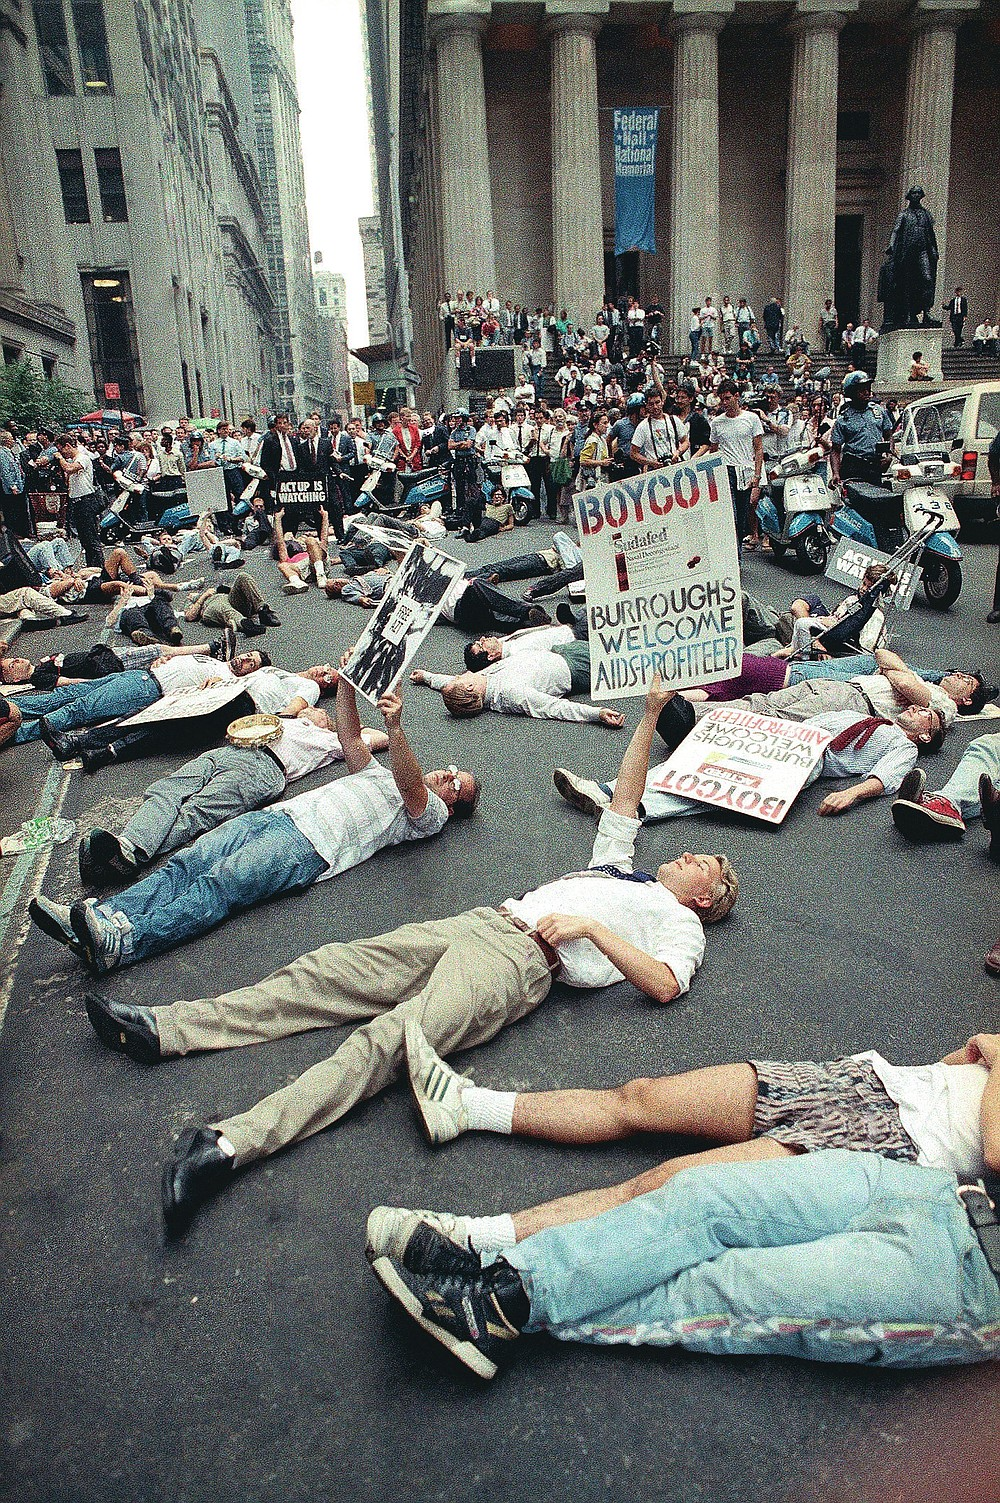 """FILE - In this Thursday, Sept. 14, 1989 file photo, protestors lie on the street in front of the New York Stock Exchange in a demonstration against the high cost of the AIDS treatment drug AZT. The protest was organized by the gay rights activist group ACT UP. In response to protests, the FDA agreed to speed testing and approval of new therapies — a key step in curbing the high death toll from AIDS. Activist Larry Kramer, who died in May, said the protesters' sense of rage made a difference. """"Until you have anger and fear, you don't have any kind of an activist movement,"""" he told Metro Weekly, a Washington-based LGBT publication, in 2011. (AP Photo/Tim Clary, File)"""